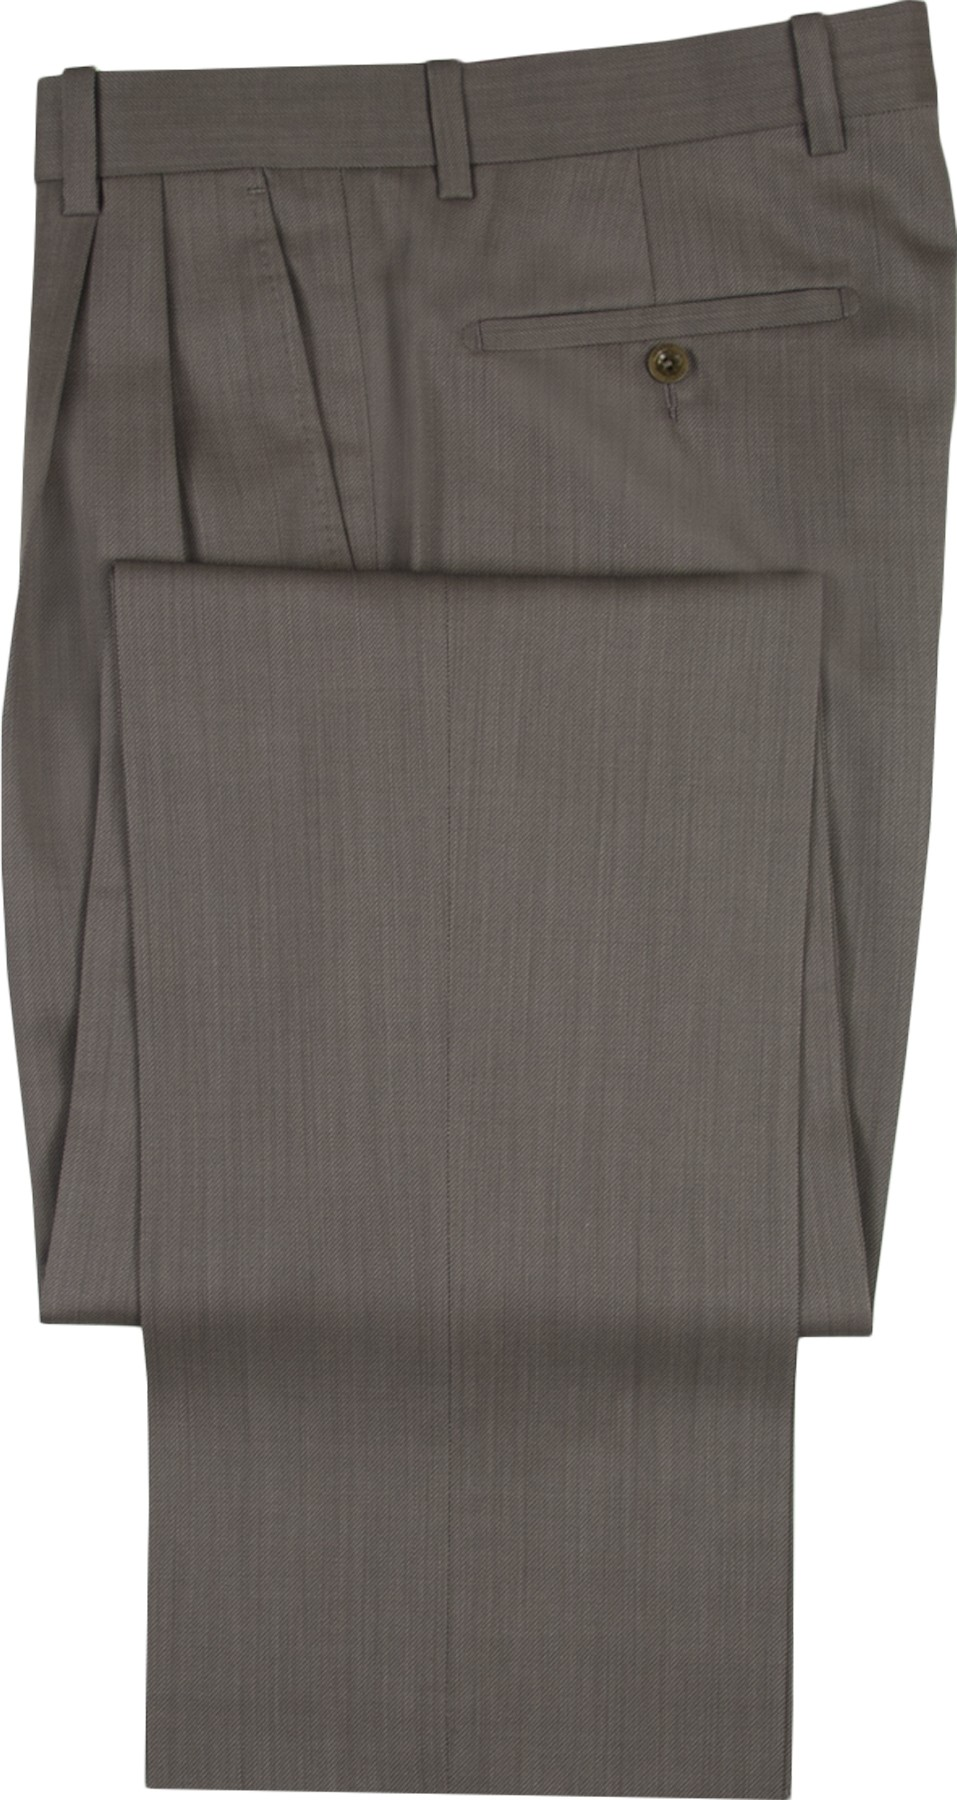 "Aristo 18 ""Aberdeen"" Microfiber Cord Pleated Trouser - Tech"